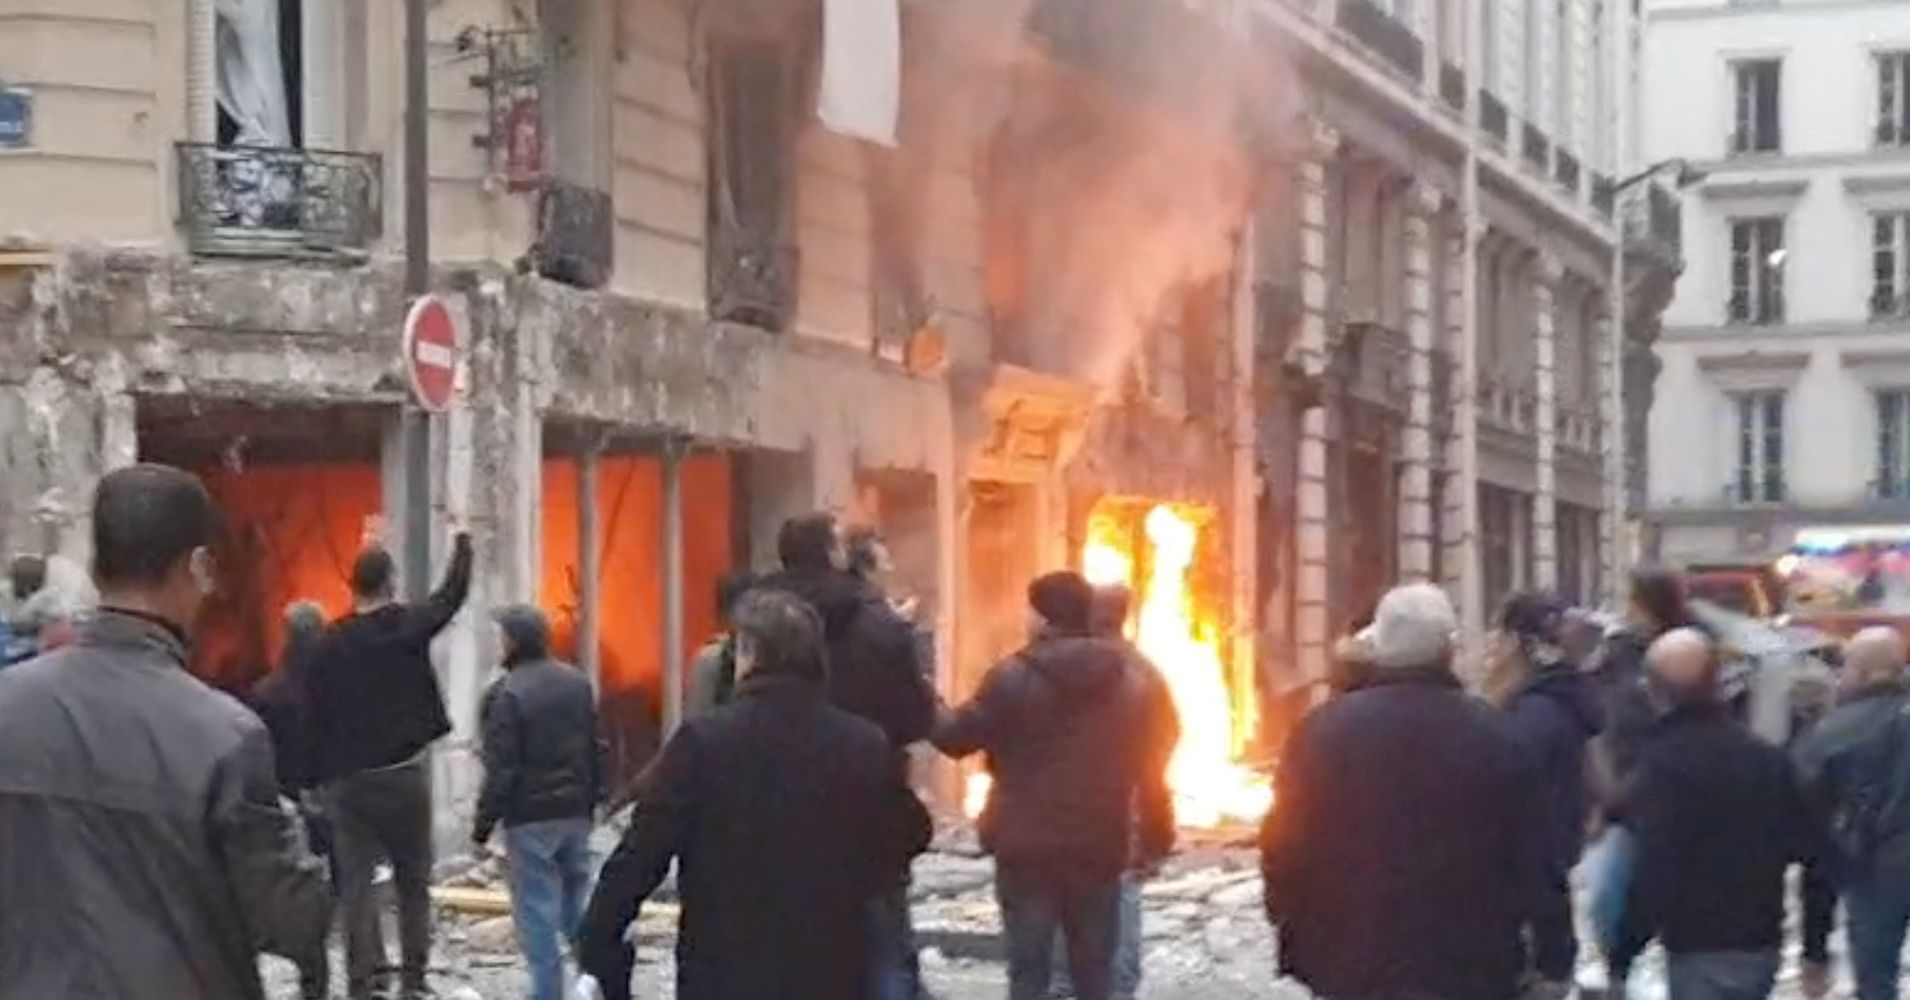 4 Killed And Dozens Injured After Gas Explosion Rocks Bakery In Paris